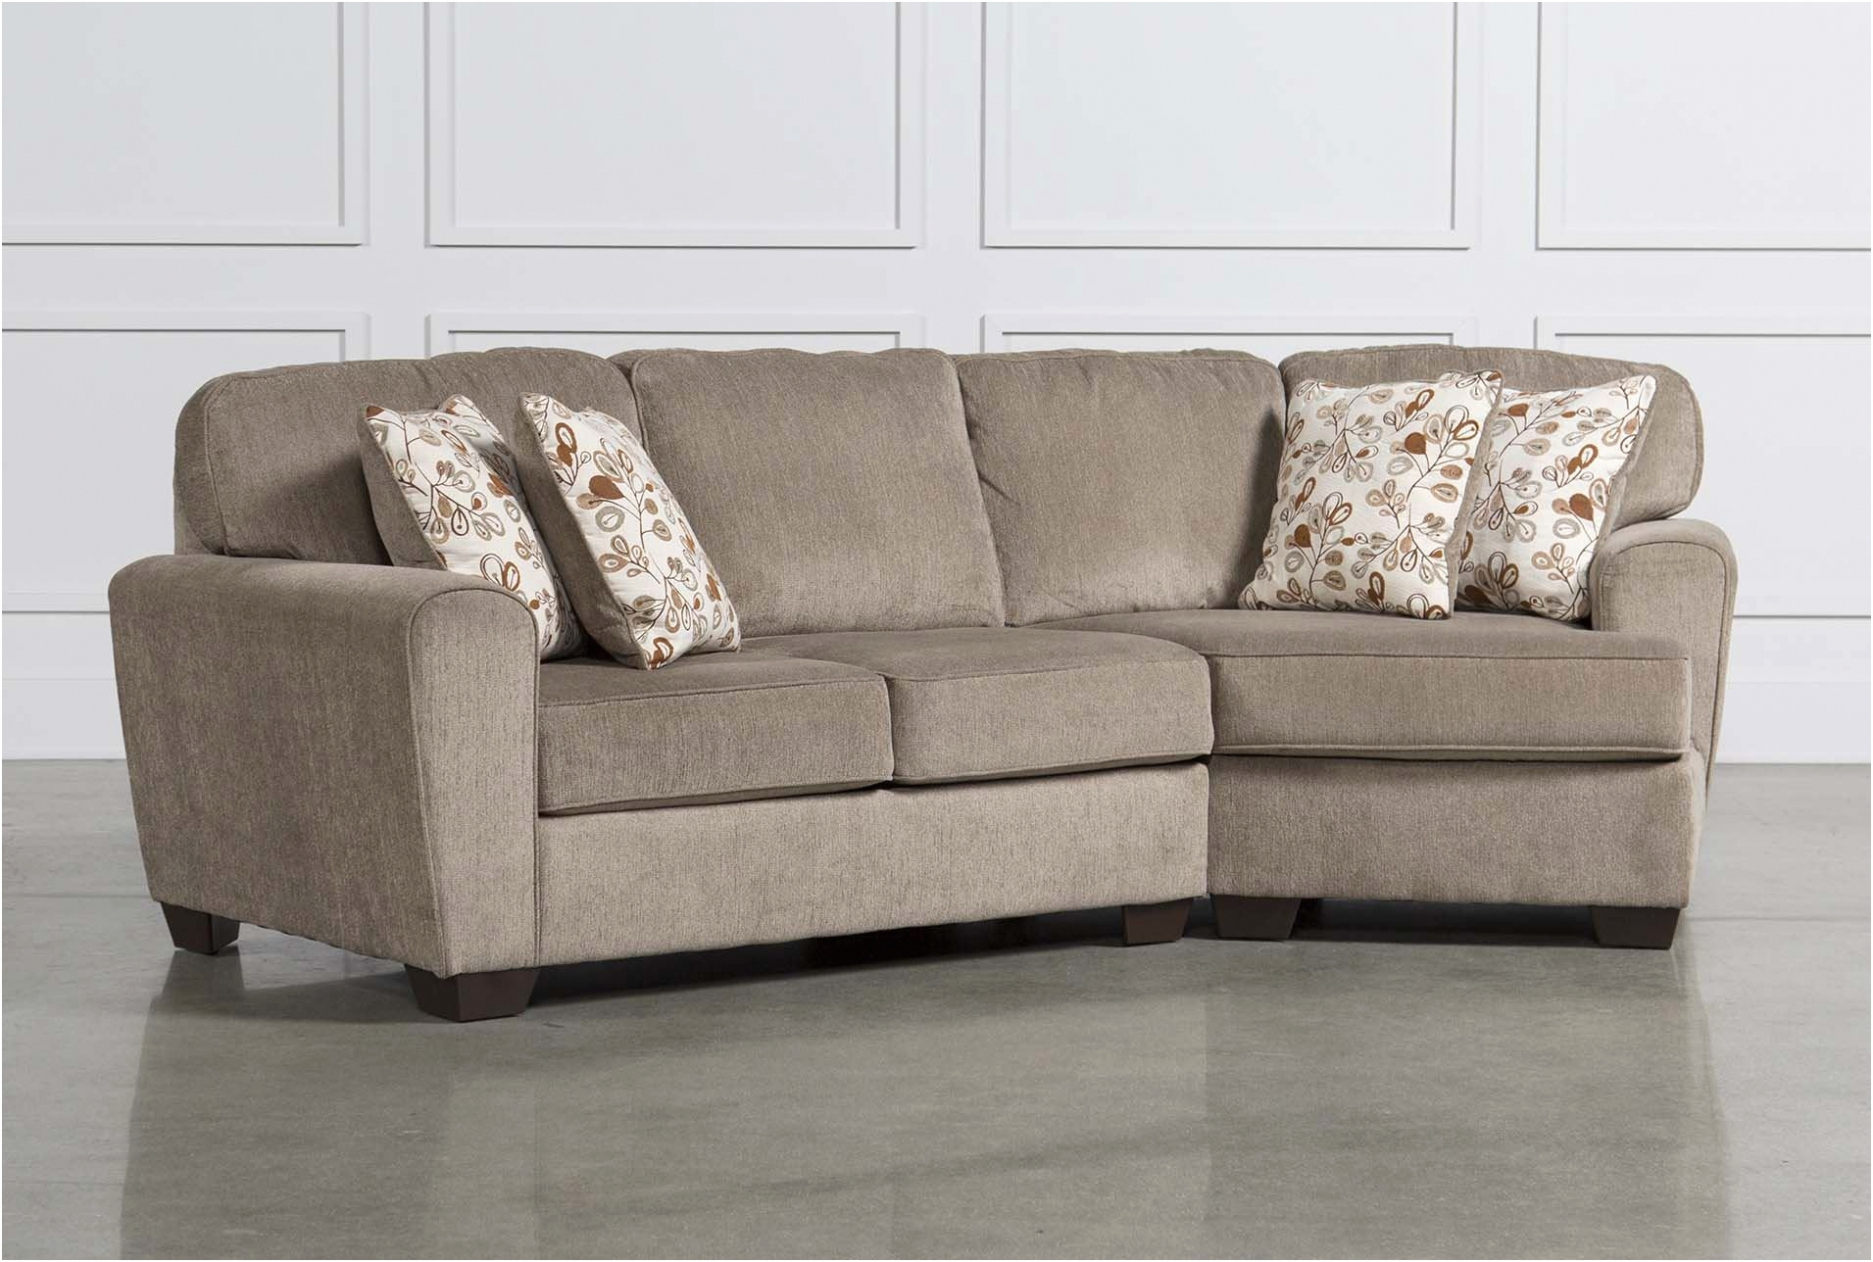 Most Recently Released Aquarius Light Grey 2 Piece Sectionals With Laf Chaise For Living Spaces Sectional Sofa Bed – Sofa Design Ideas (View 16 of 20)